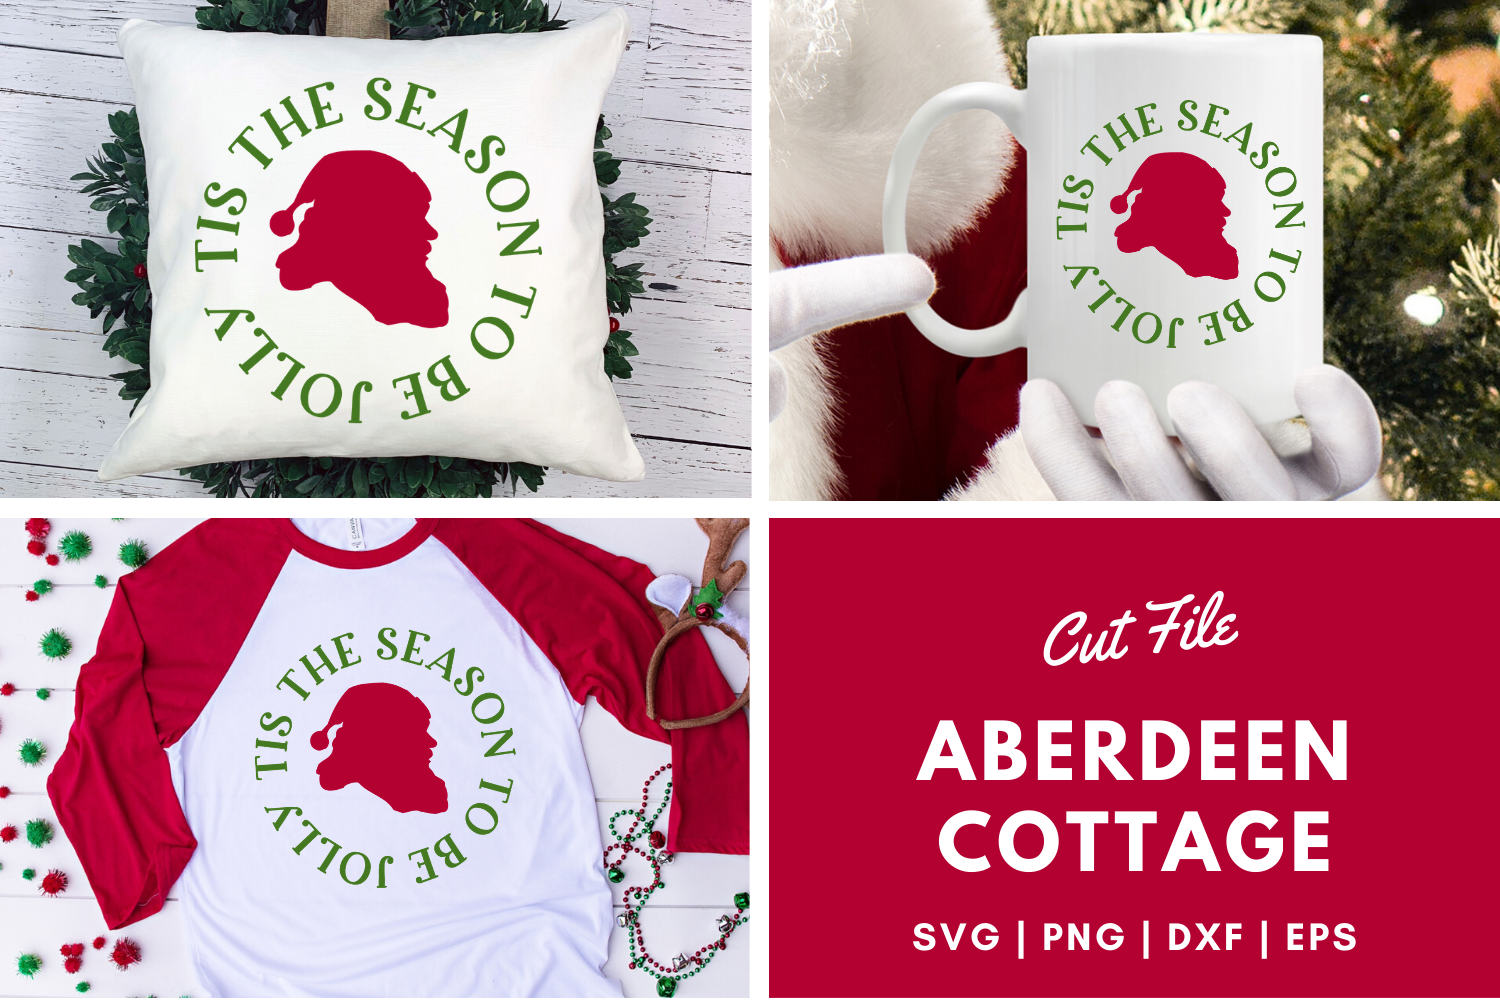 Download Free Tis Theseason To Be Jolly Svg Graphic By Aberdeencottage for Cricut Explore, Silhouette and other cutting machines.